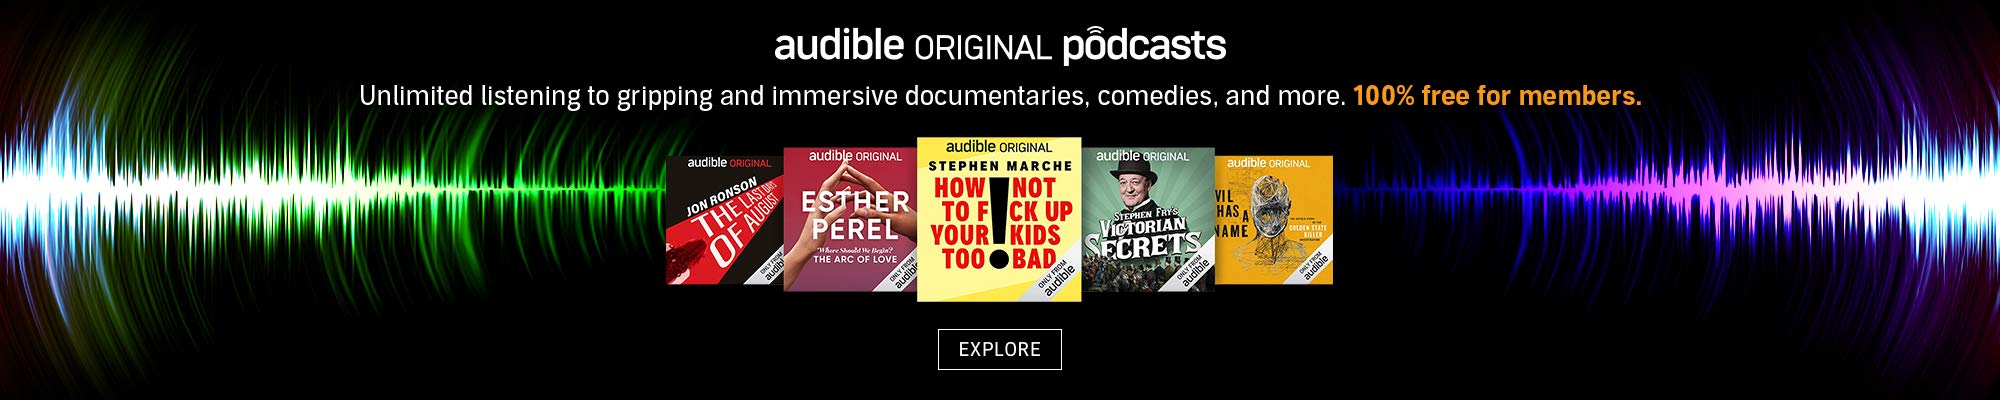 Audible Original Podcasts. Unlimited listening to gripping and immersive documentaries, comedy, and more. 100% free for members.